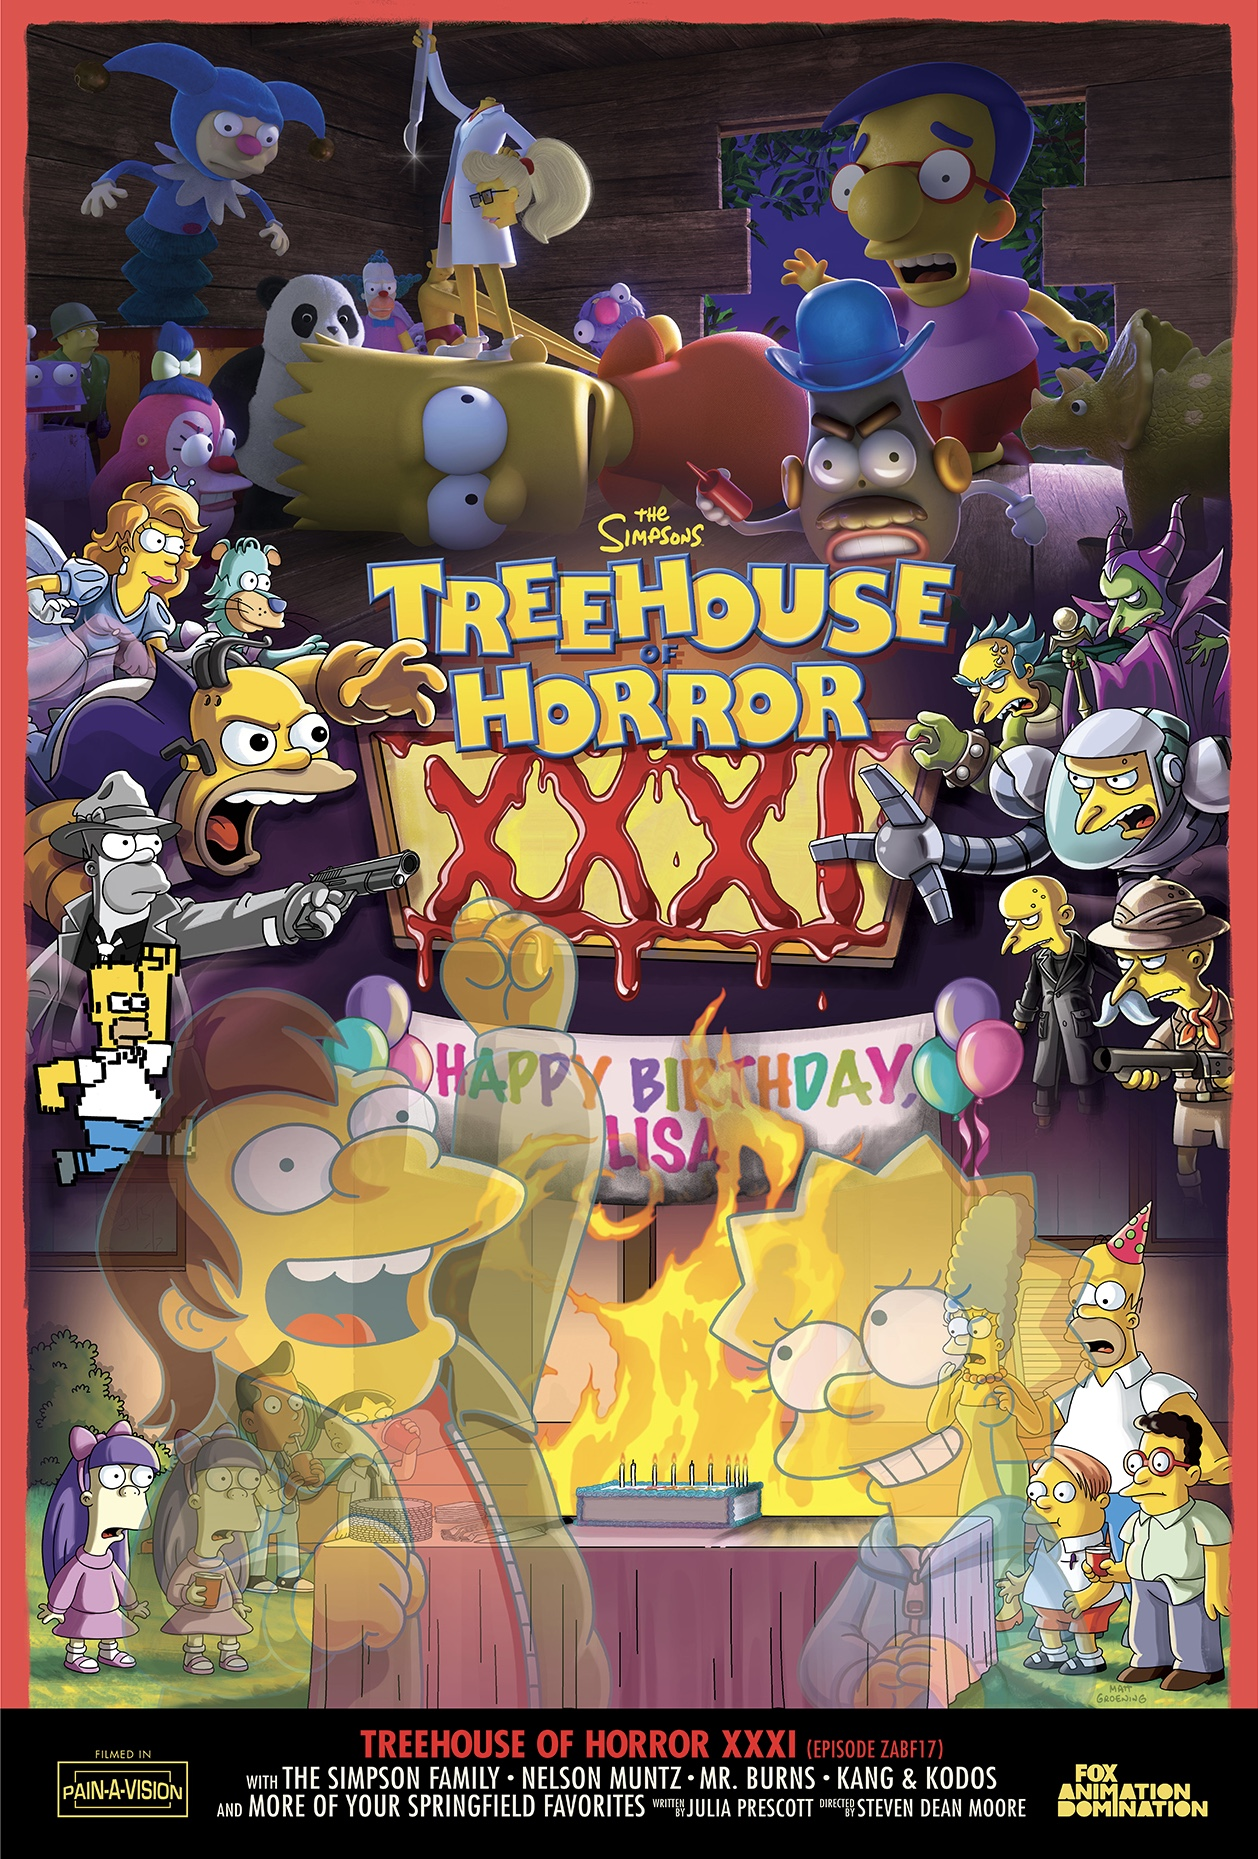 Treehouse of Horror XXXI